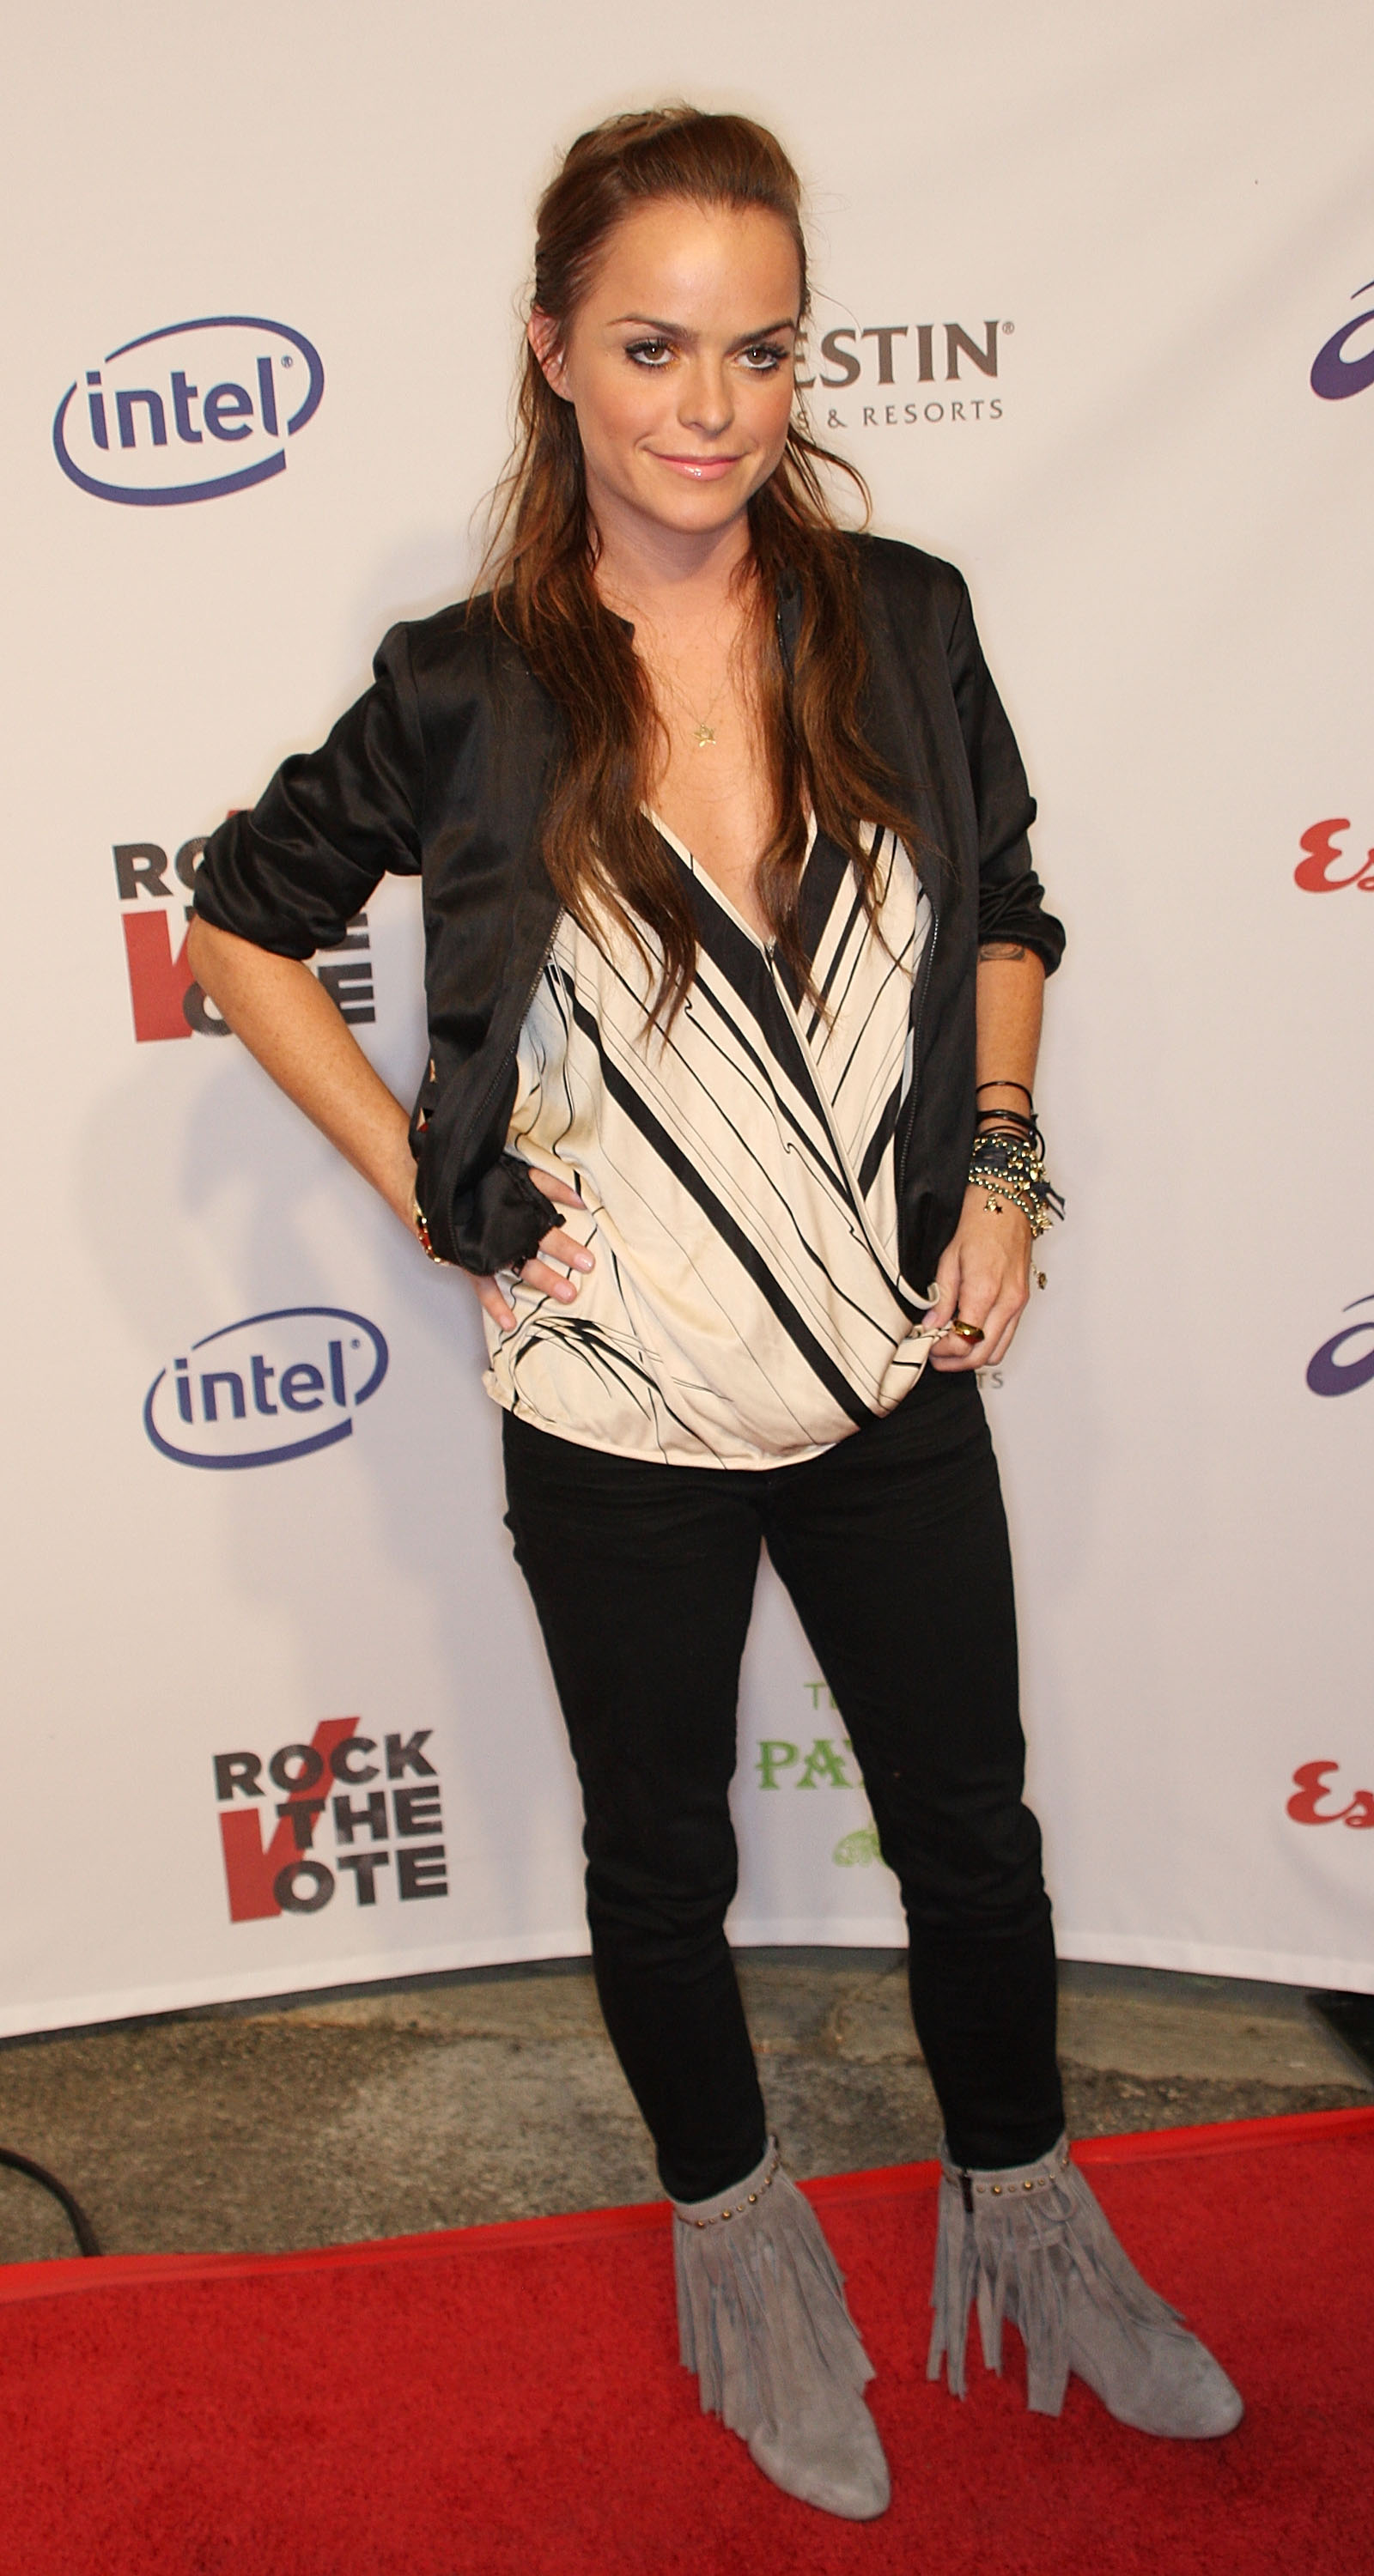 27035_Celebutopia-Taryn_Manning-Esquire_House_Hollywood_Hills_Rock_The_Vote_party-04_122_692lo.jpg